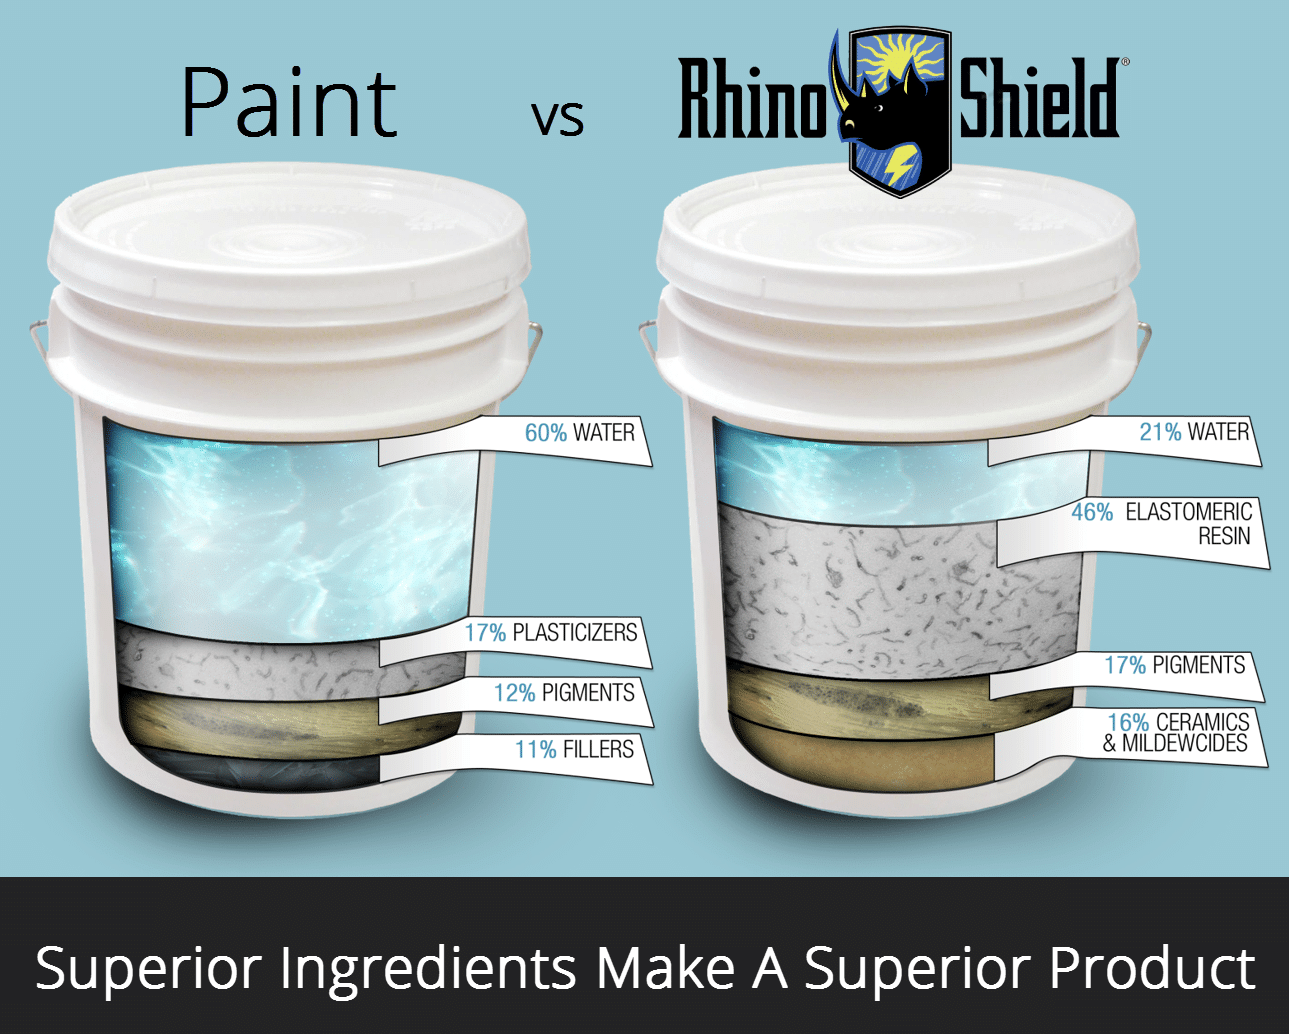 comparison of paint vs Rhino Shield ingredients